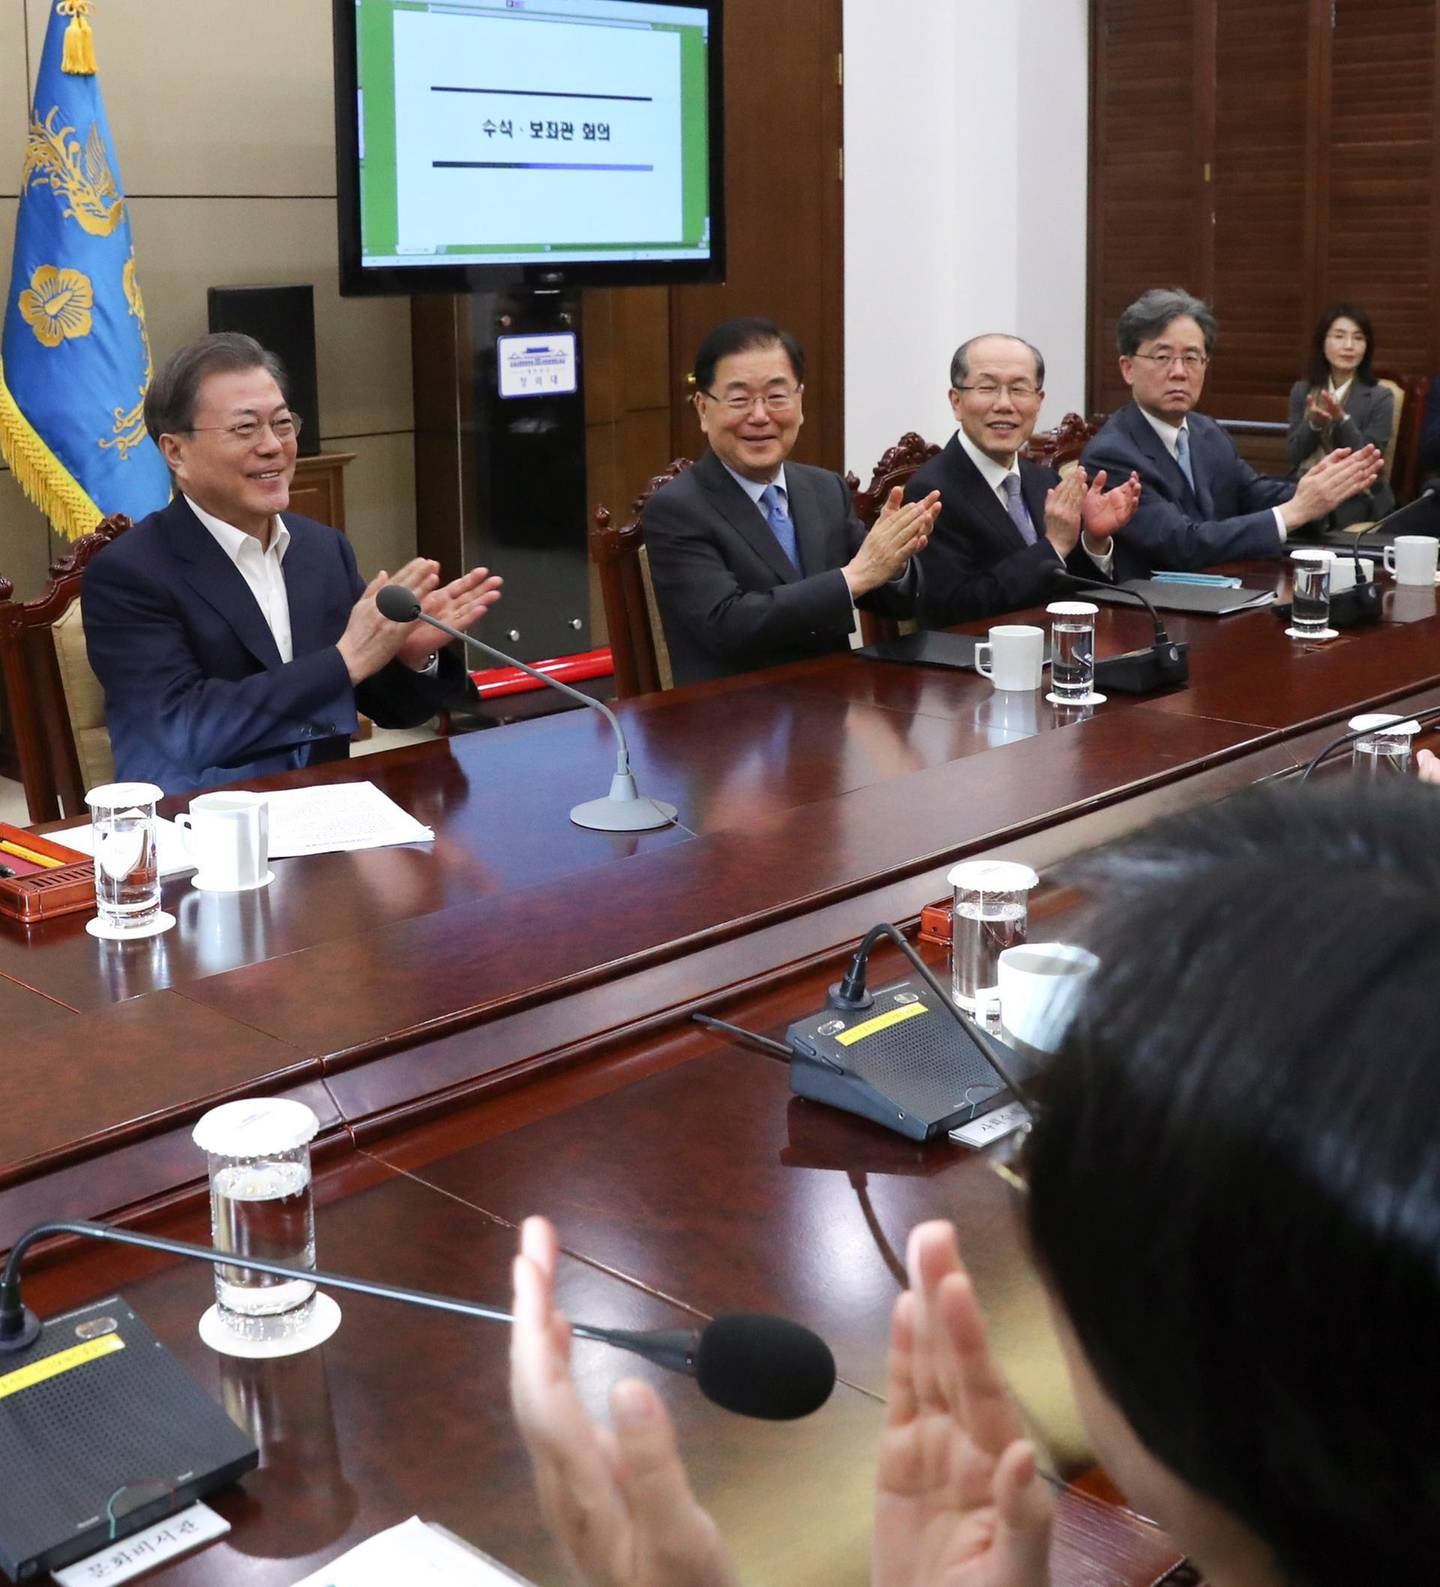 epa08208264 South Korean President Moon Jae-in (L) and his top secretaries react after hearing the news that South Korean director Bong Joon-ho won four Academy Awards, prior to a meeting at the presidential office in Seoul, South Korea, 10 February 2020. Bong Joon-ho's movie Parasite won four Academy Awards on 09 February for Best Original Screenplay, Best International Feature Film, Best Director and Best Picture. It is the first time a foreign-language movie wins the Academy Award for Best Picture.  EPA/YONHAP SOUTH KOREA OUT